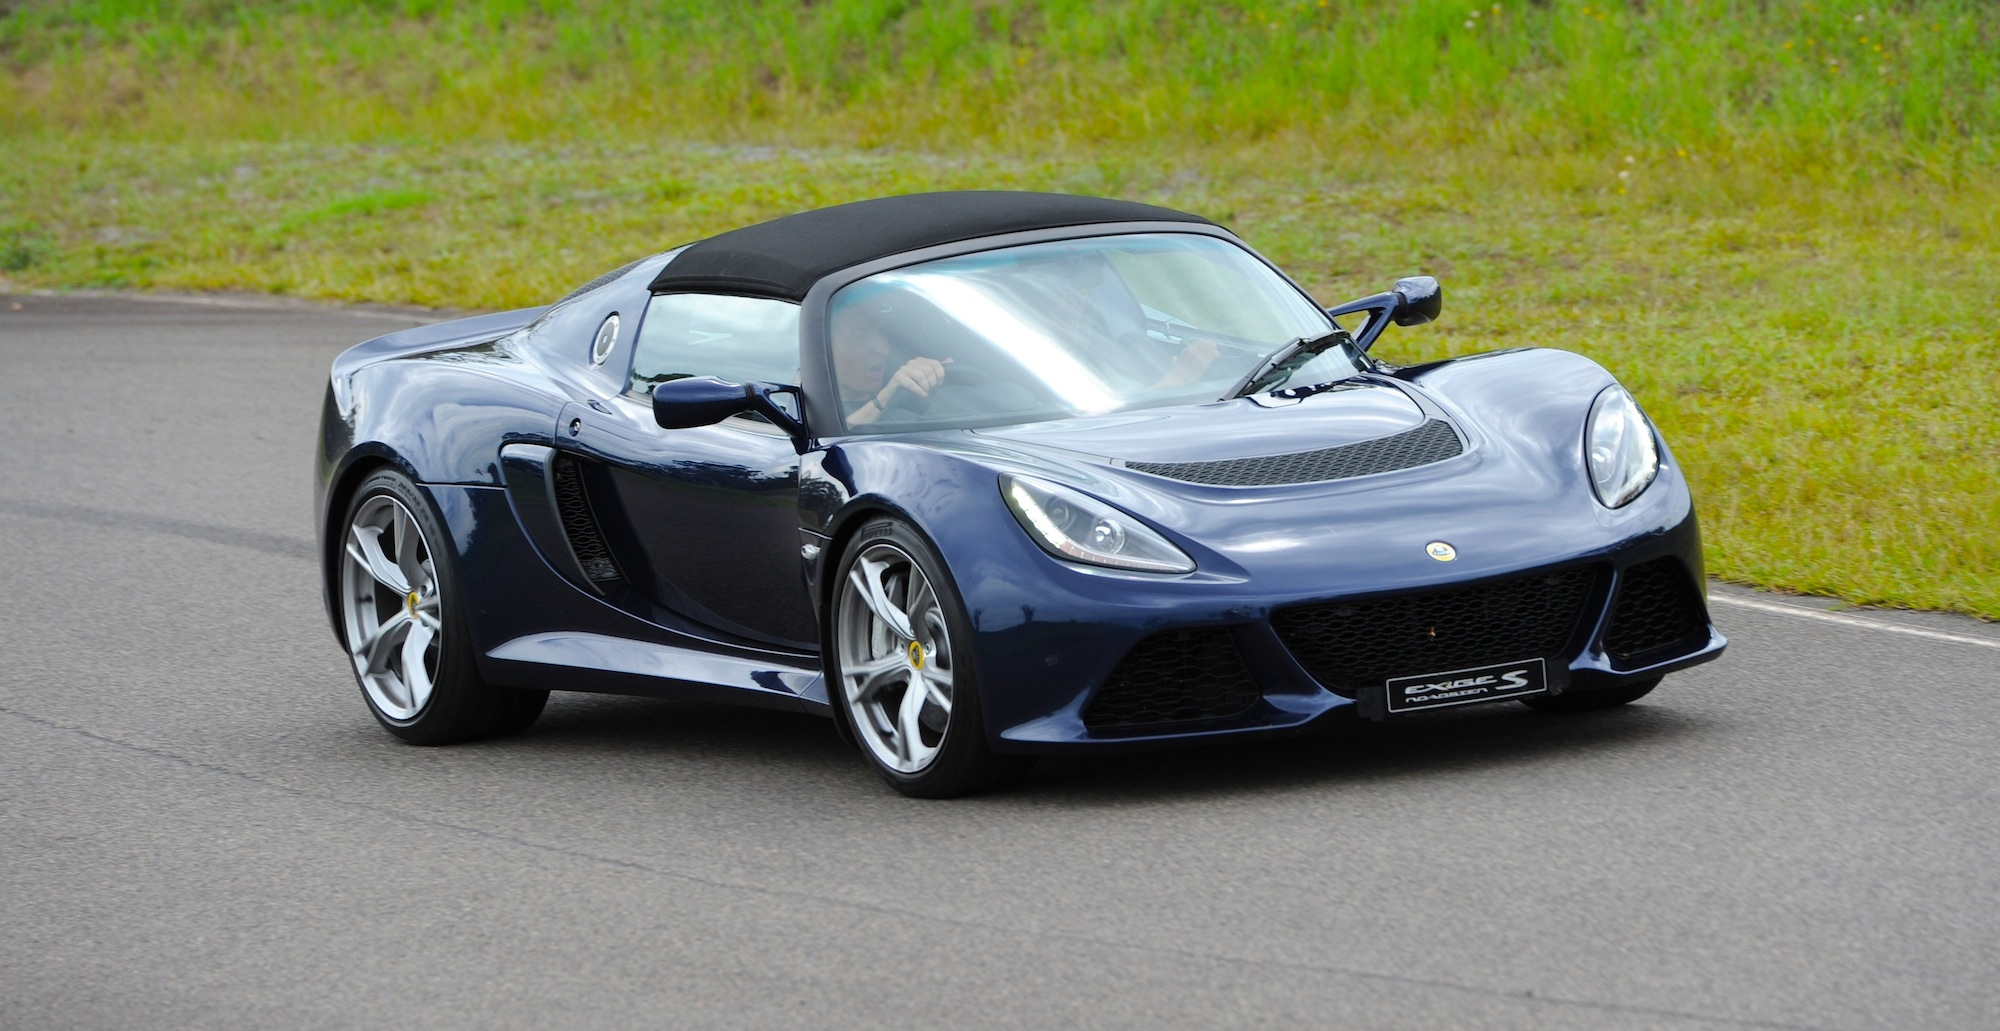 Lotus Exige S Roadster Review Caradvice